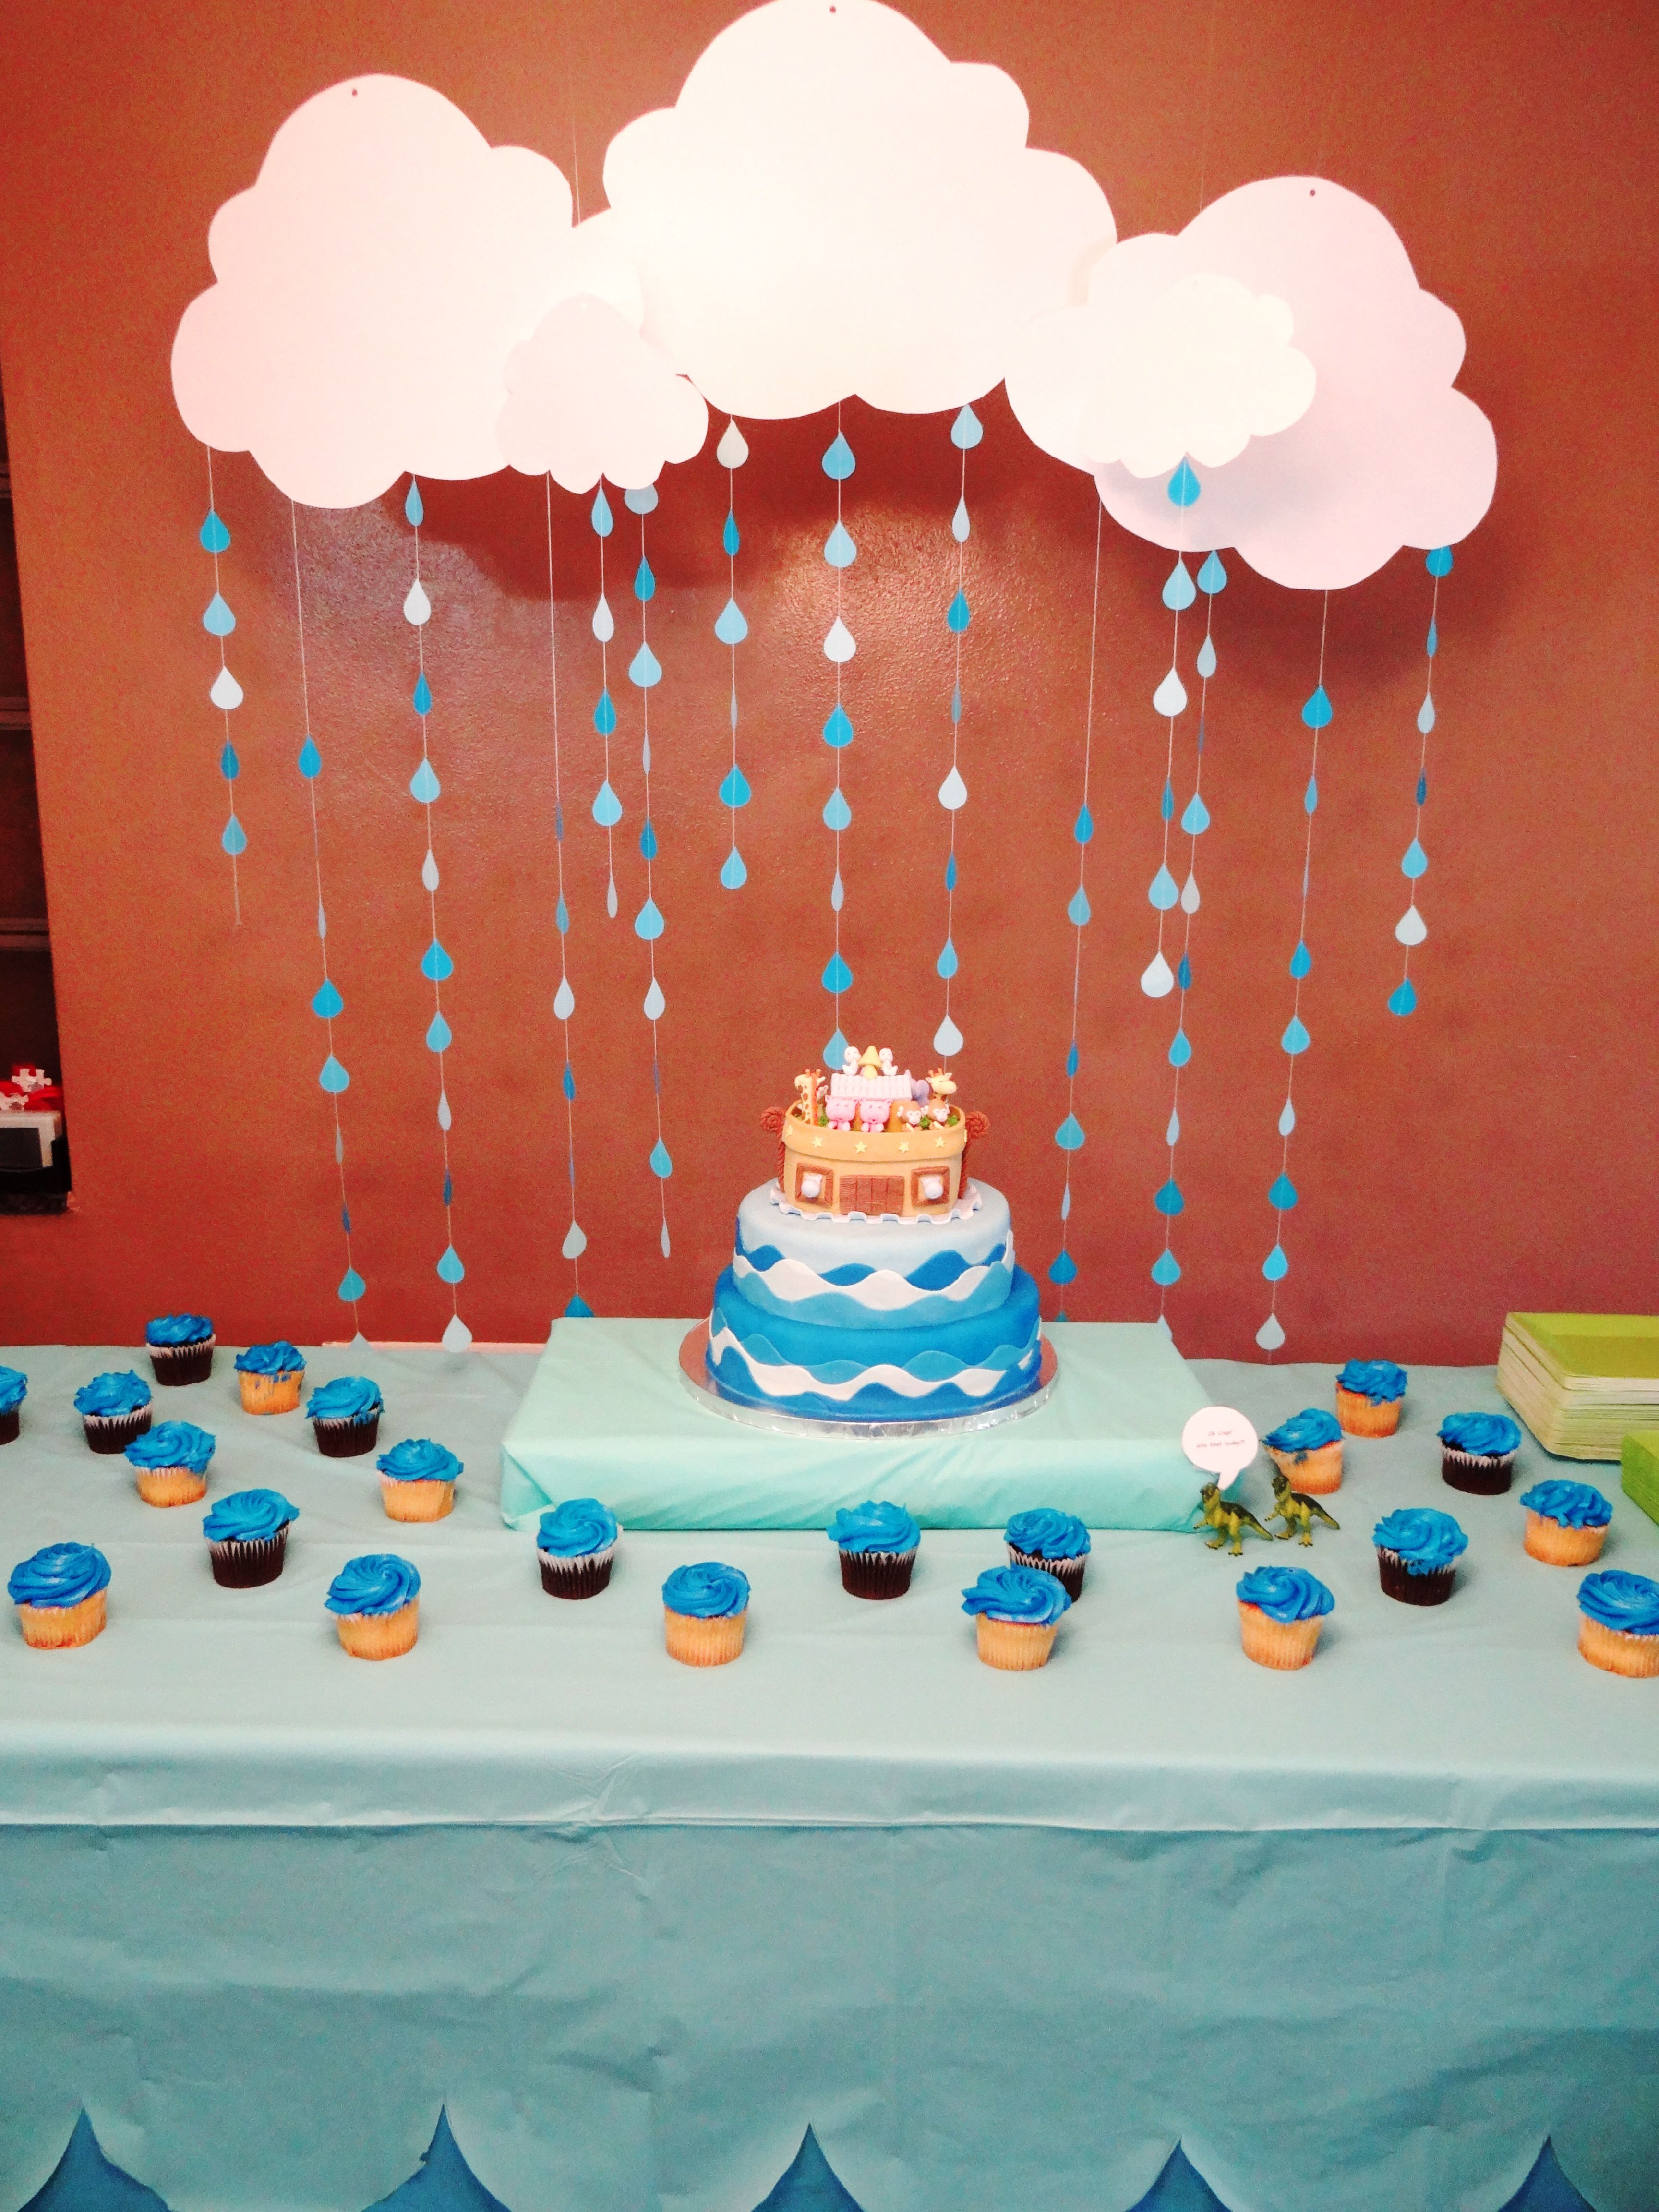 Noah\u0027s Ark Themed Baby Shower Cake Table | My Events And Weddings .